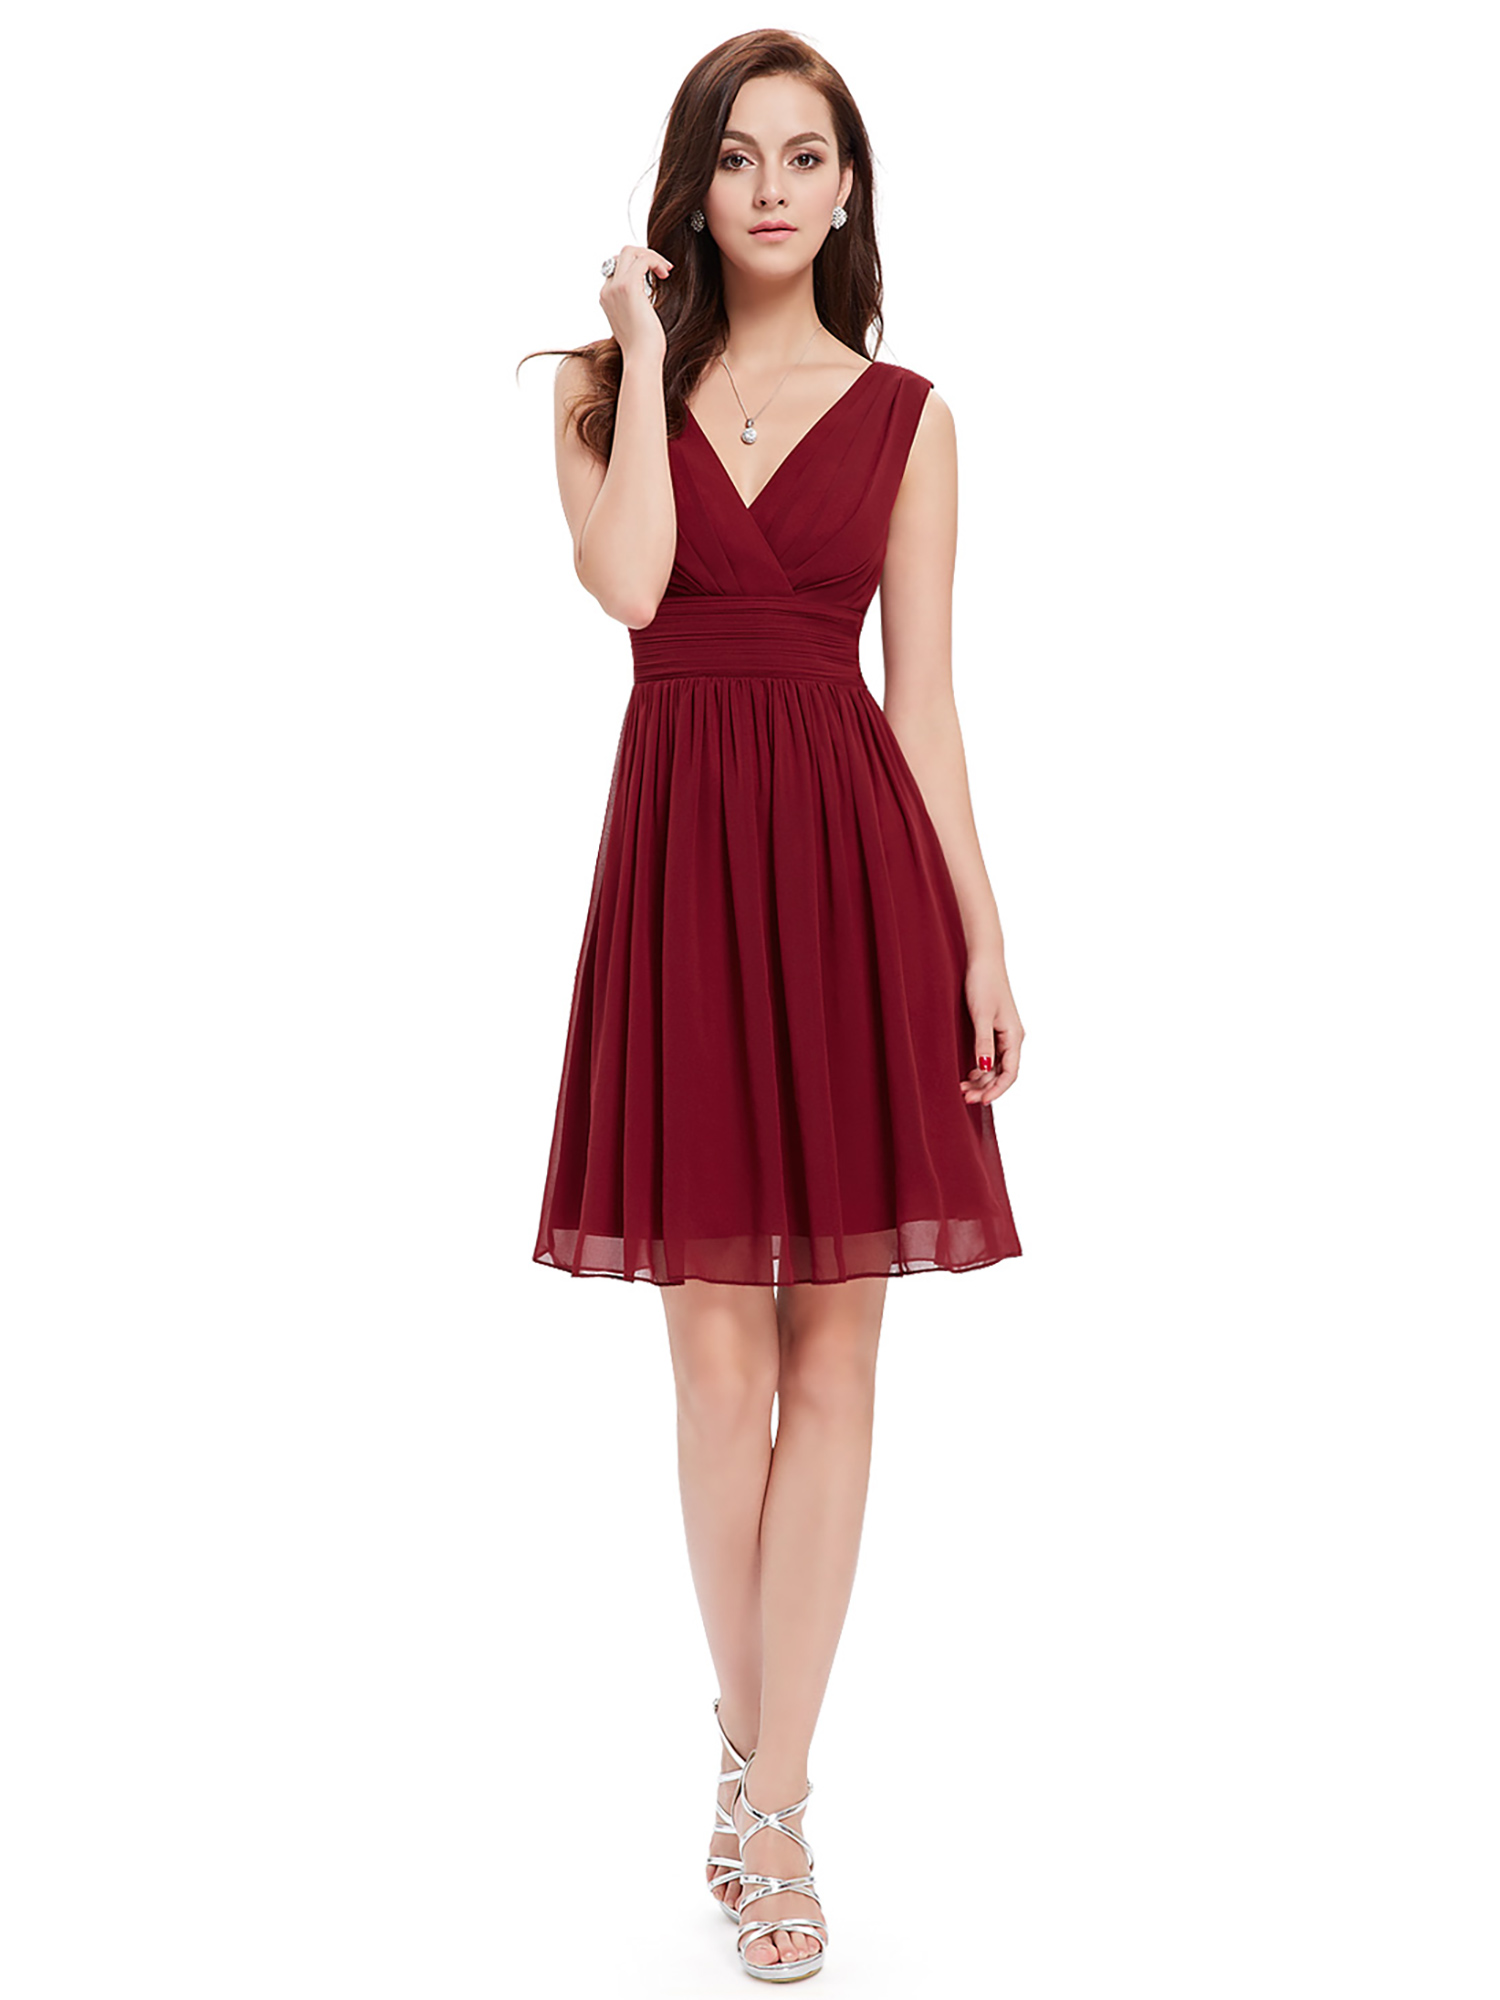 Ever-Pretty Women's Chiffon V-Neck Short Bridesmaid Wedding Party Formal Evening Dresses for Women 03989 Burgundy US 4 by Ever Pretty Garment Inc.